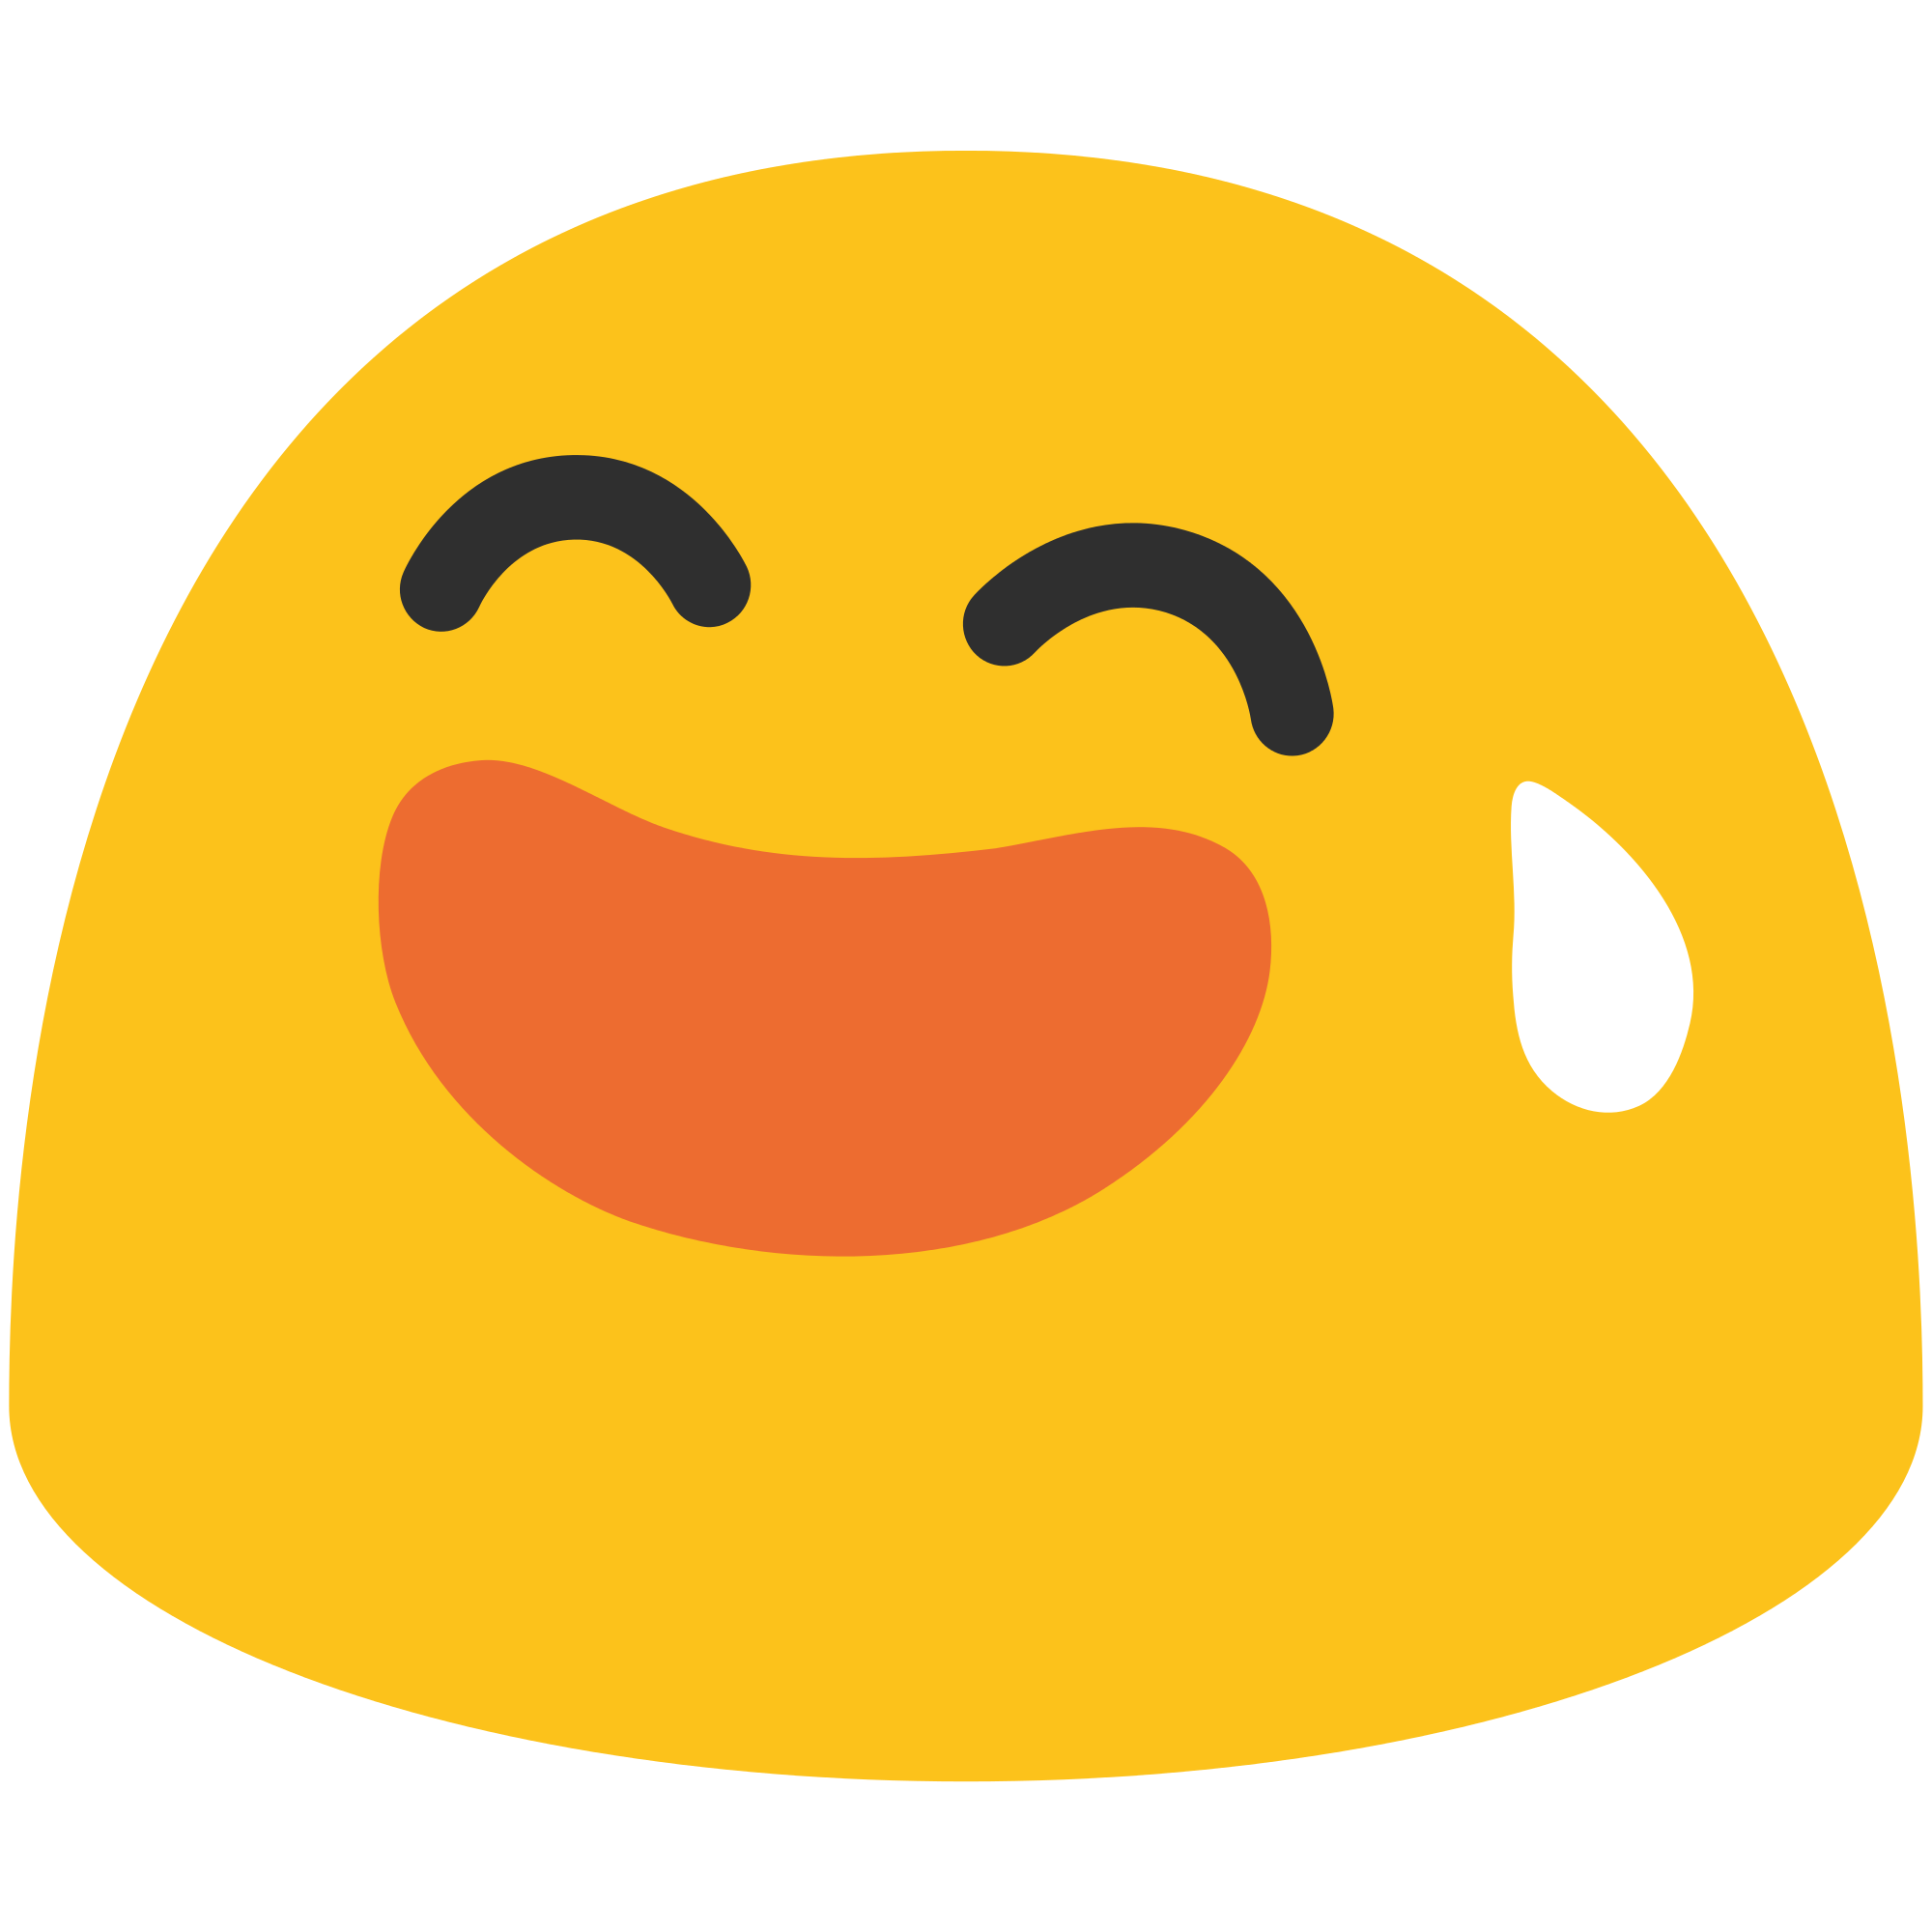 Free Icons Png Laughing Emoji